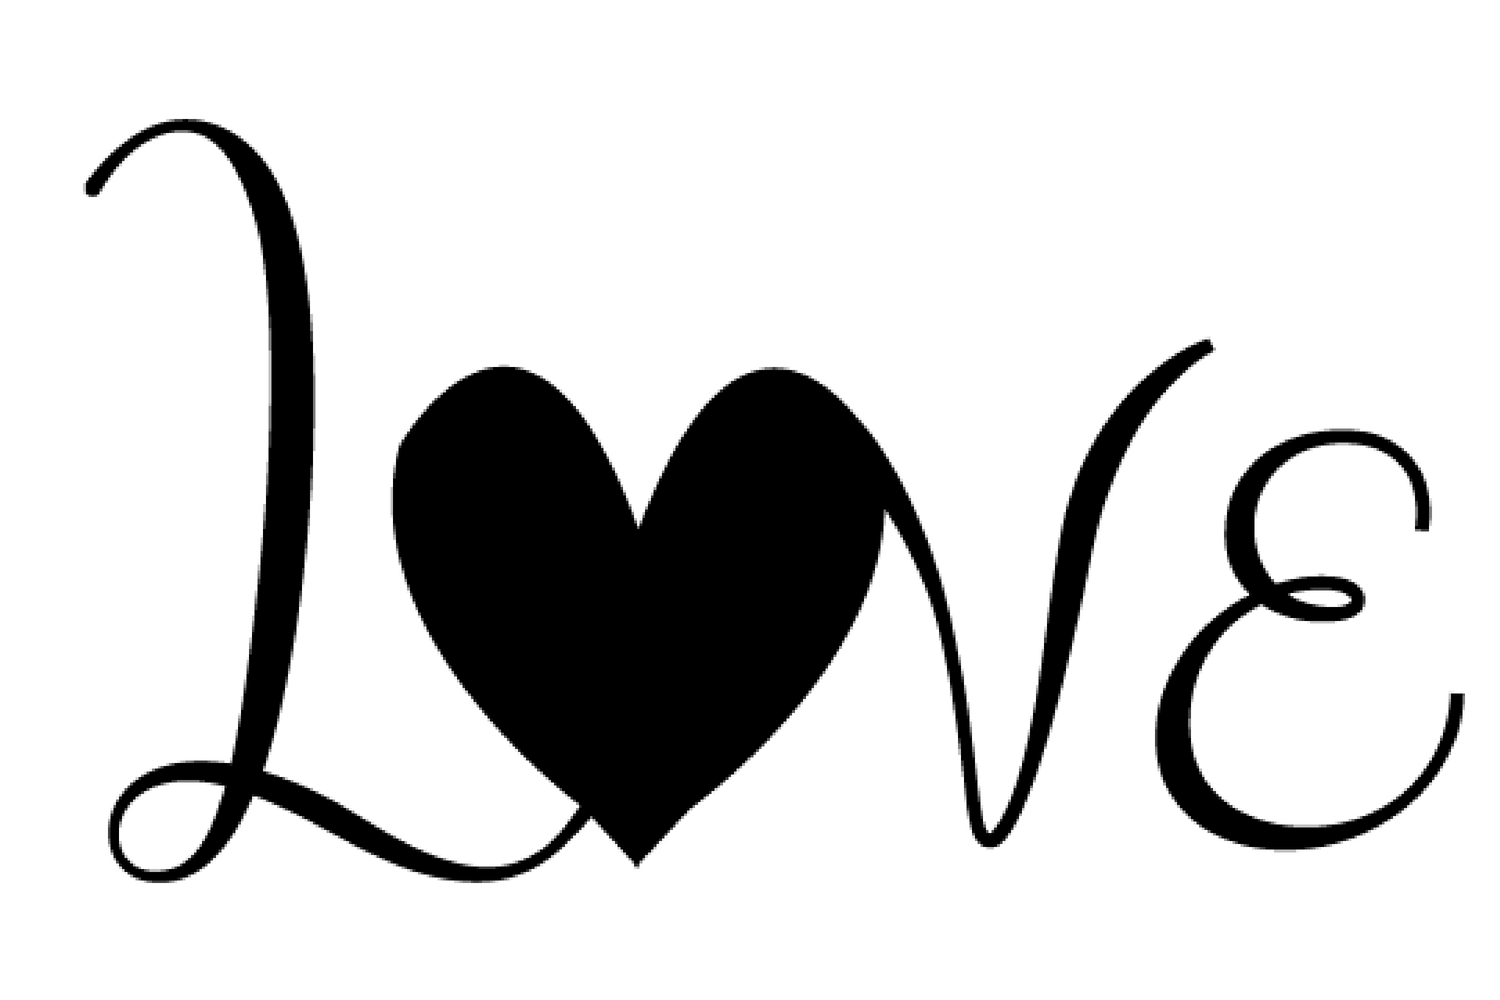 Love With Heart Svg Cut File For Silhouette Cameo Or Cricut